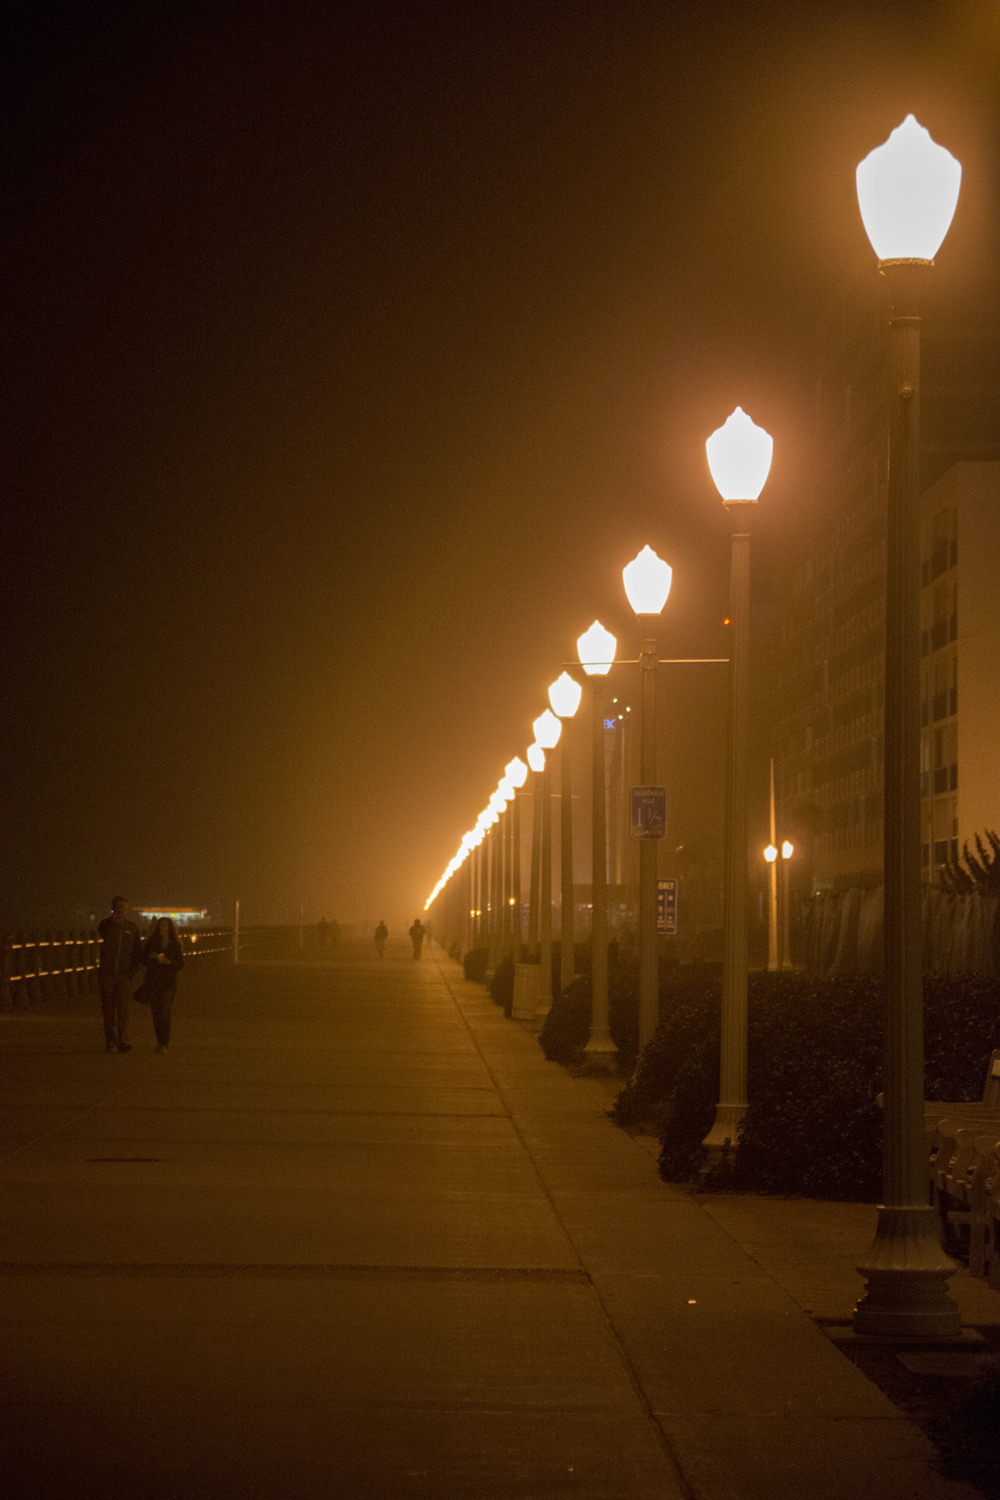 Promenade at night